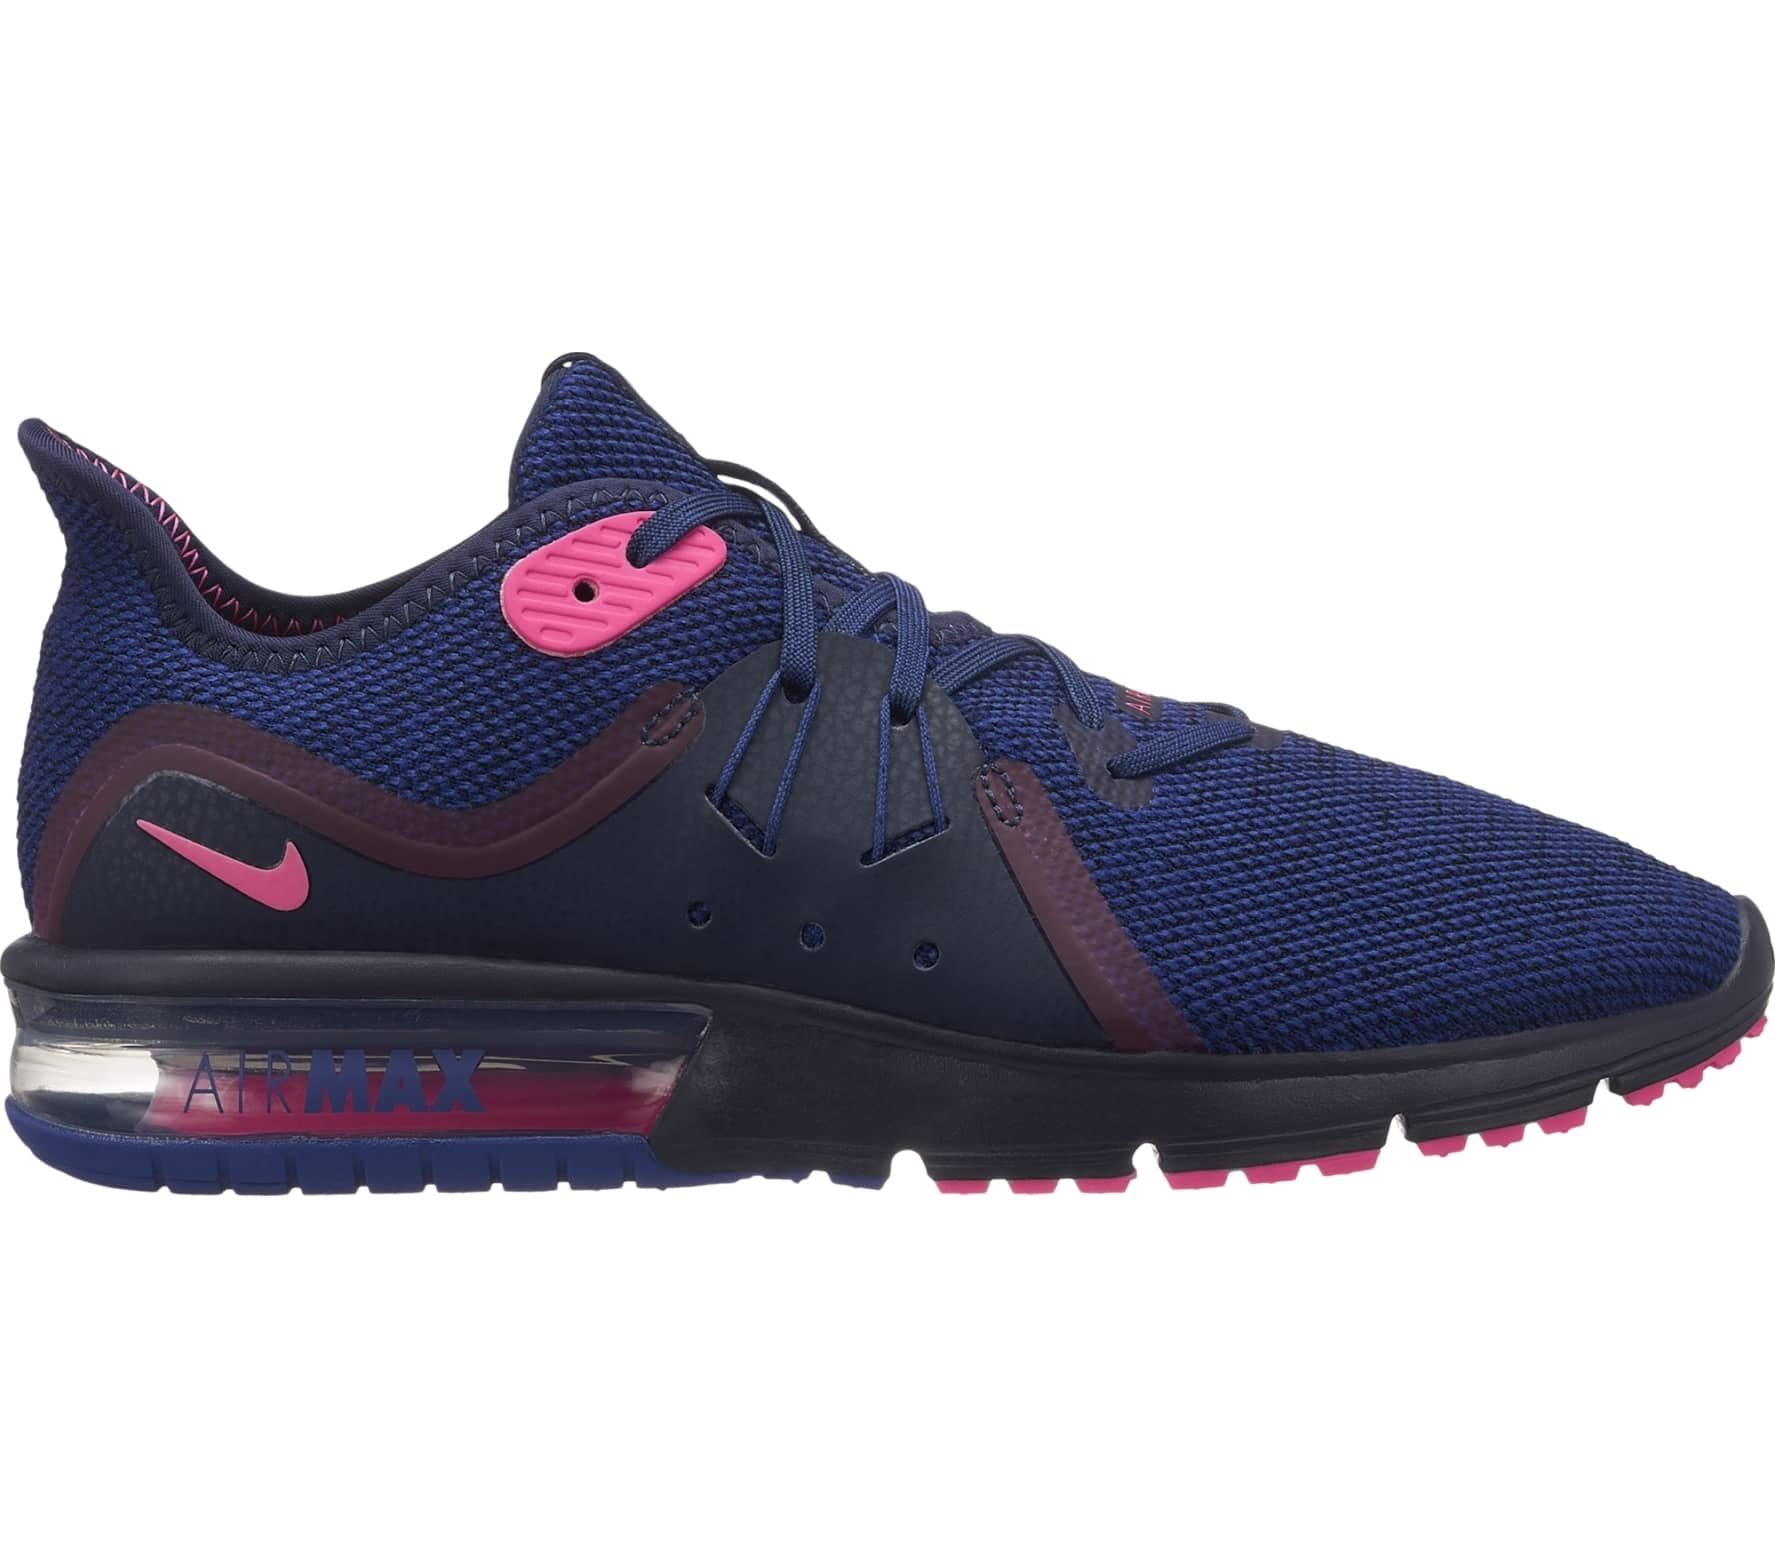 low priced a8a1d aa9cd Nike - Air Max Sequent 3 Mujer Zapatos para correr (azul)